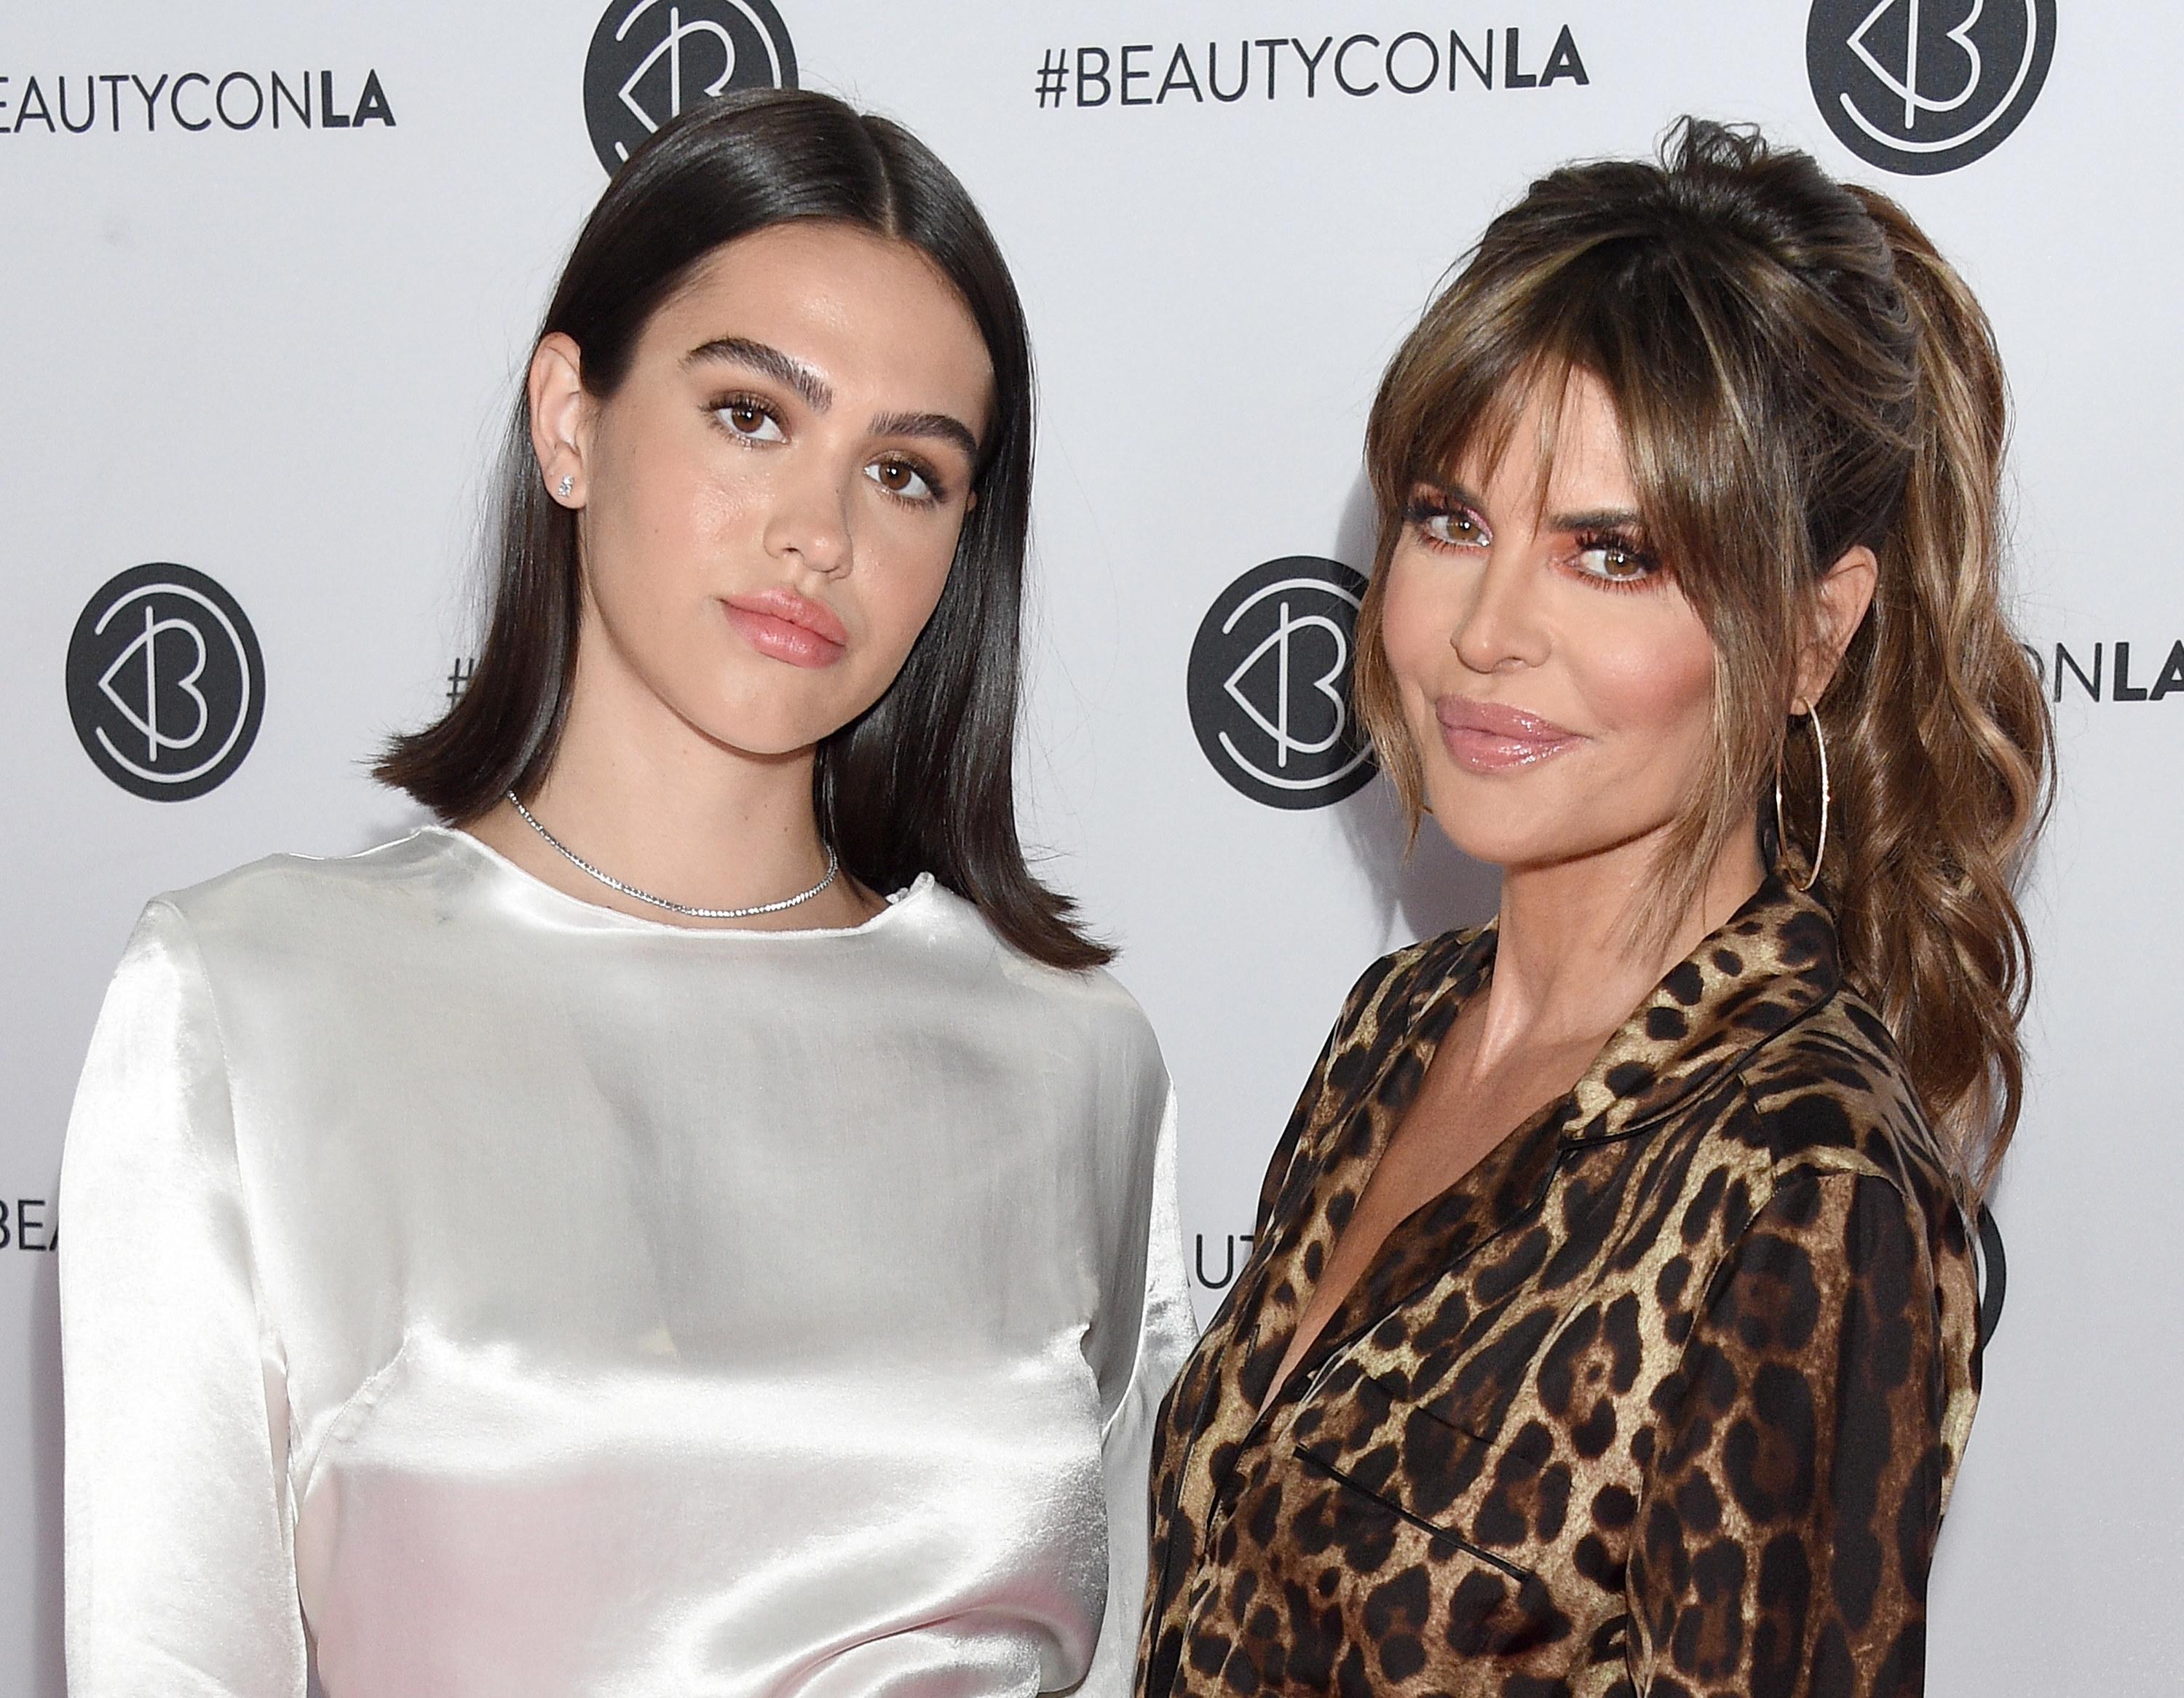 Amelia Gray Hamlin and Lisa Rinna attend Beautycon Los Angeles 2019 Pink Carpet at Los Angeles Convention Center on August 10, 2019 in Los Angeles, California